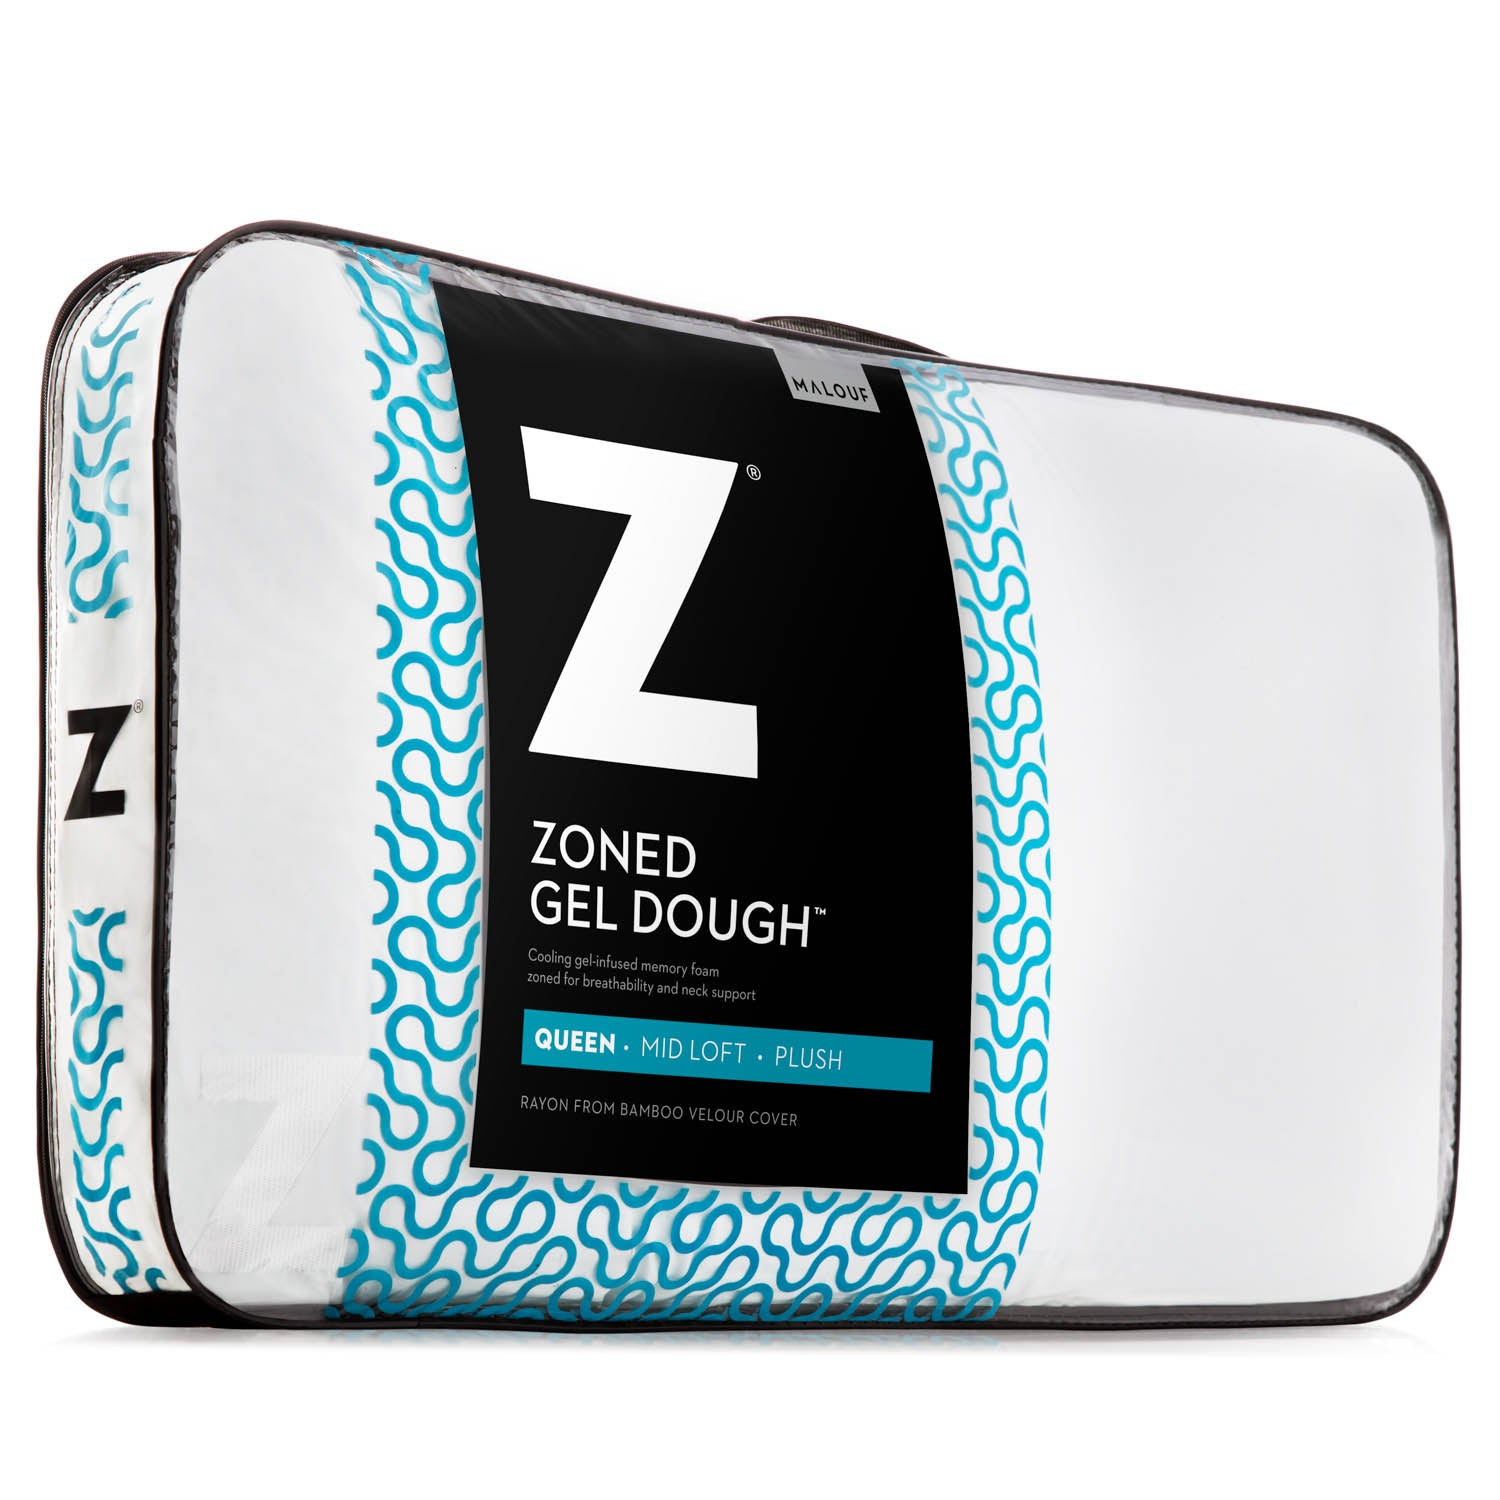 Zoned Gel Dough Pillow - Ultimate Comfort Sleep